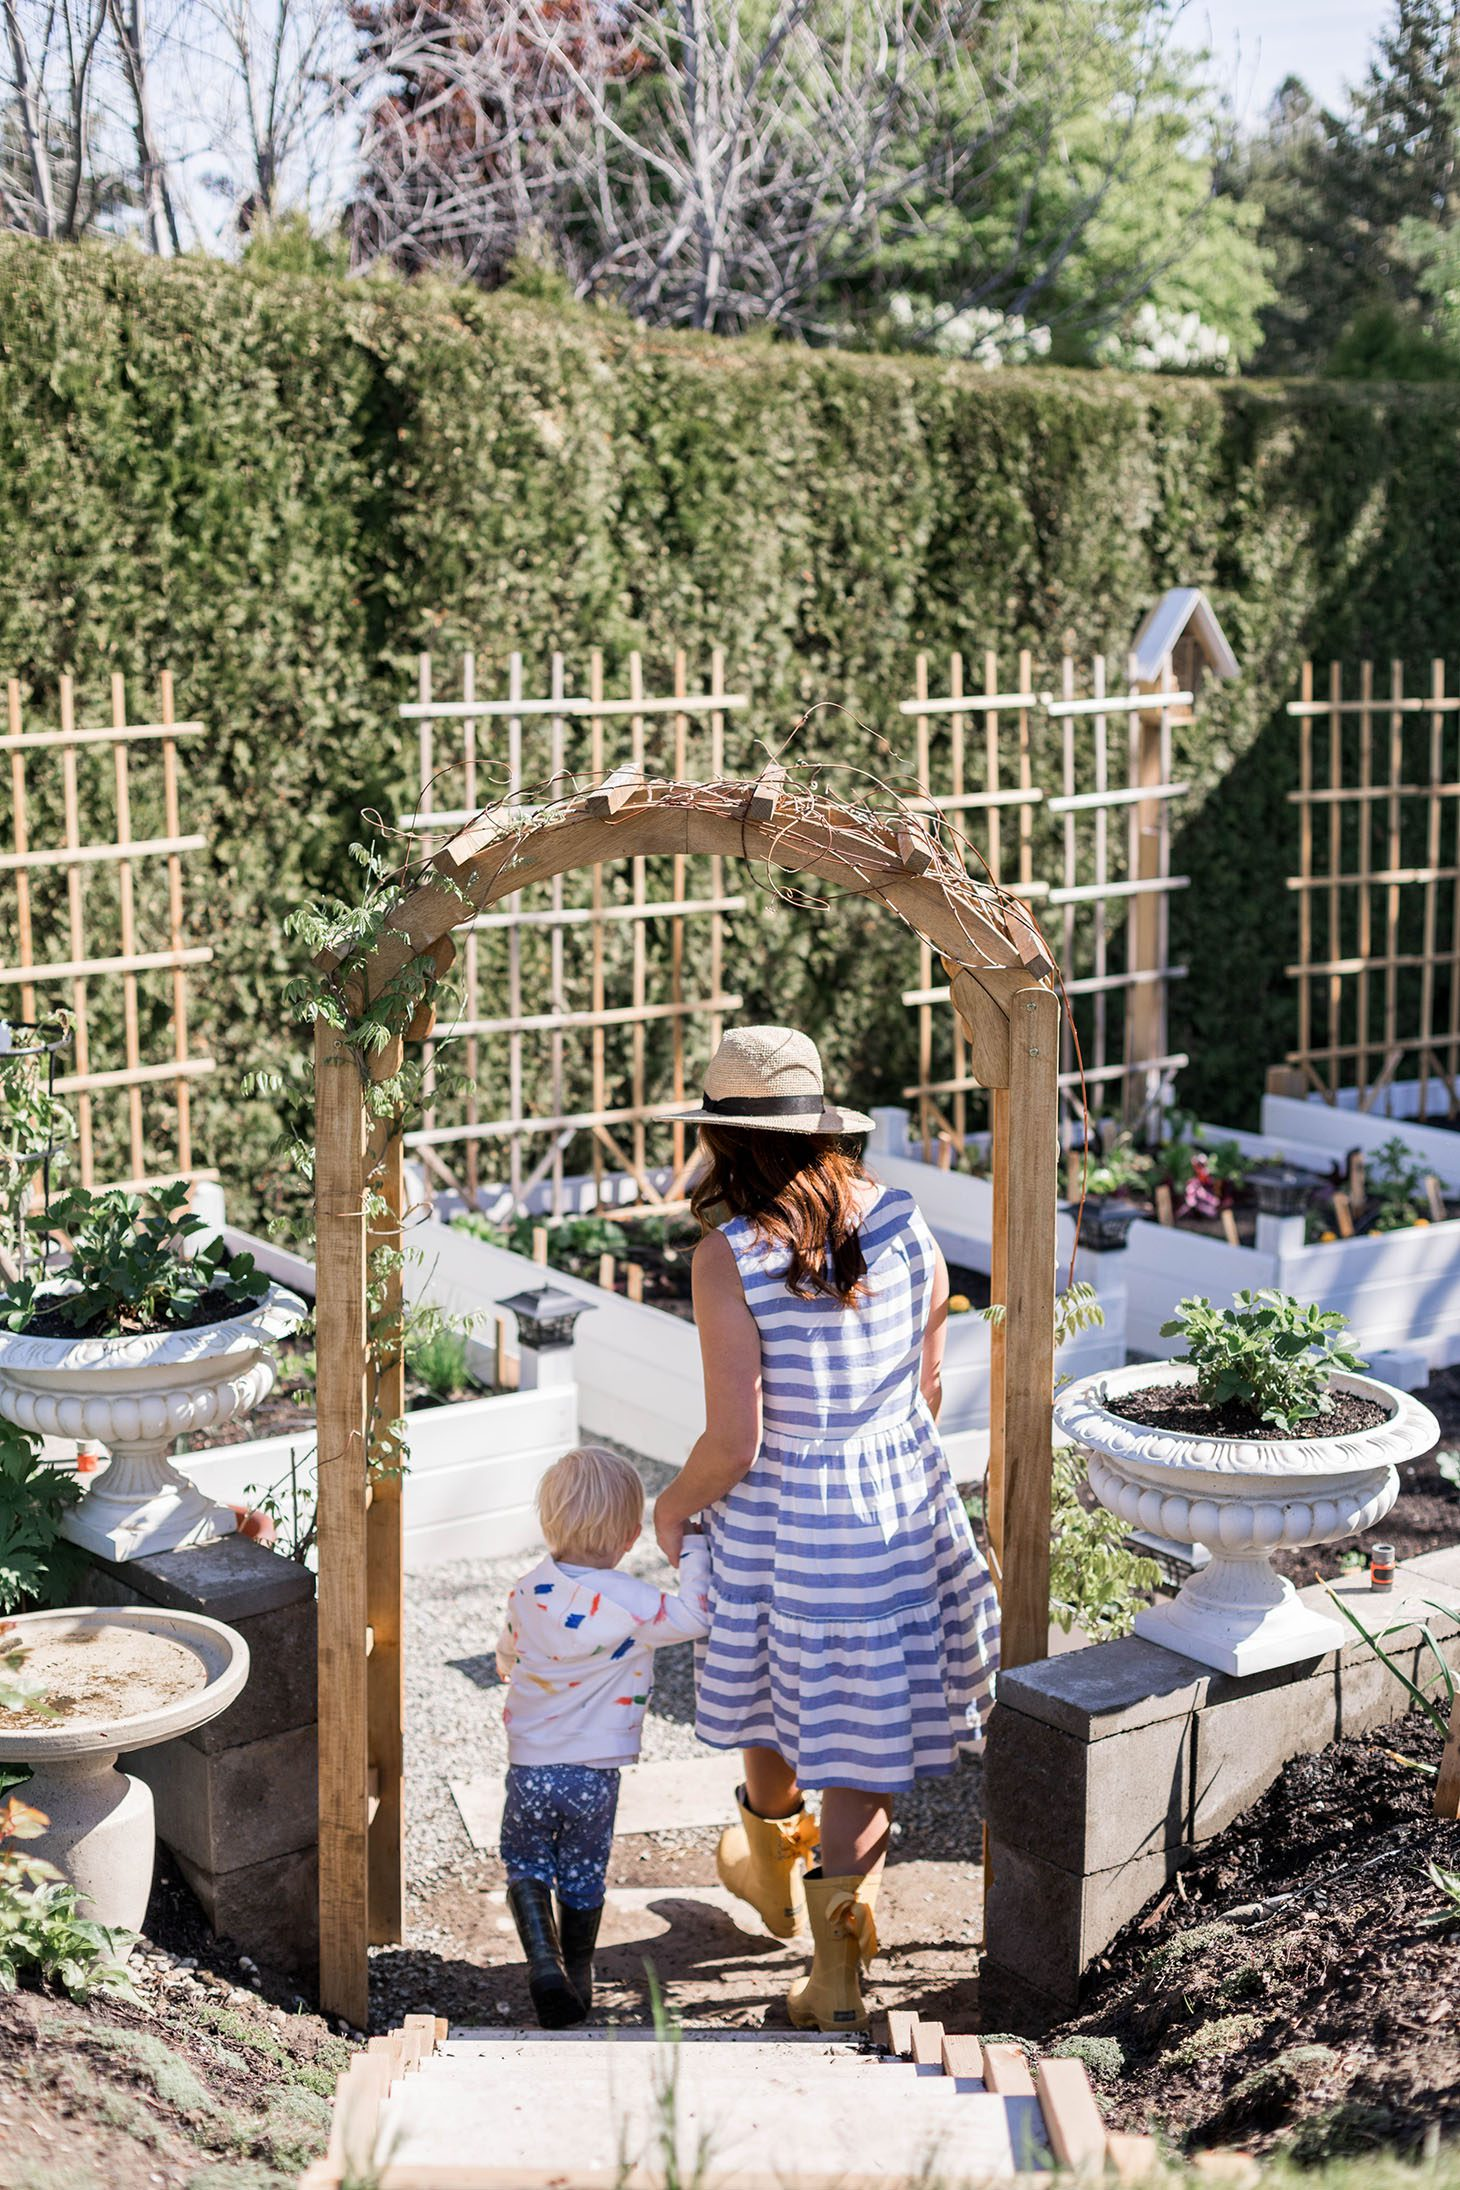 Jillian Harris 5 Veggie Garden Must Knows